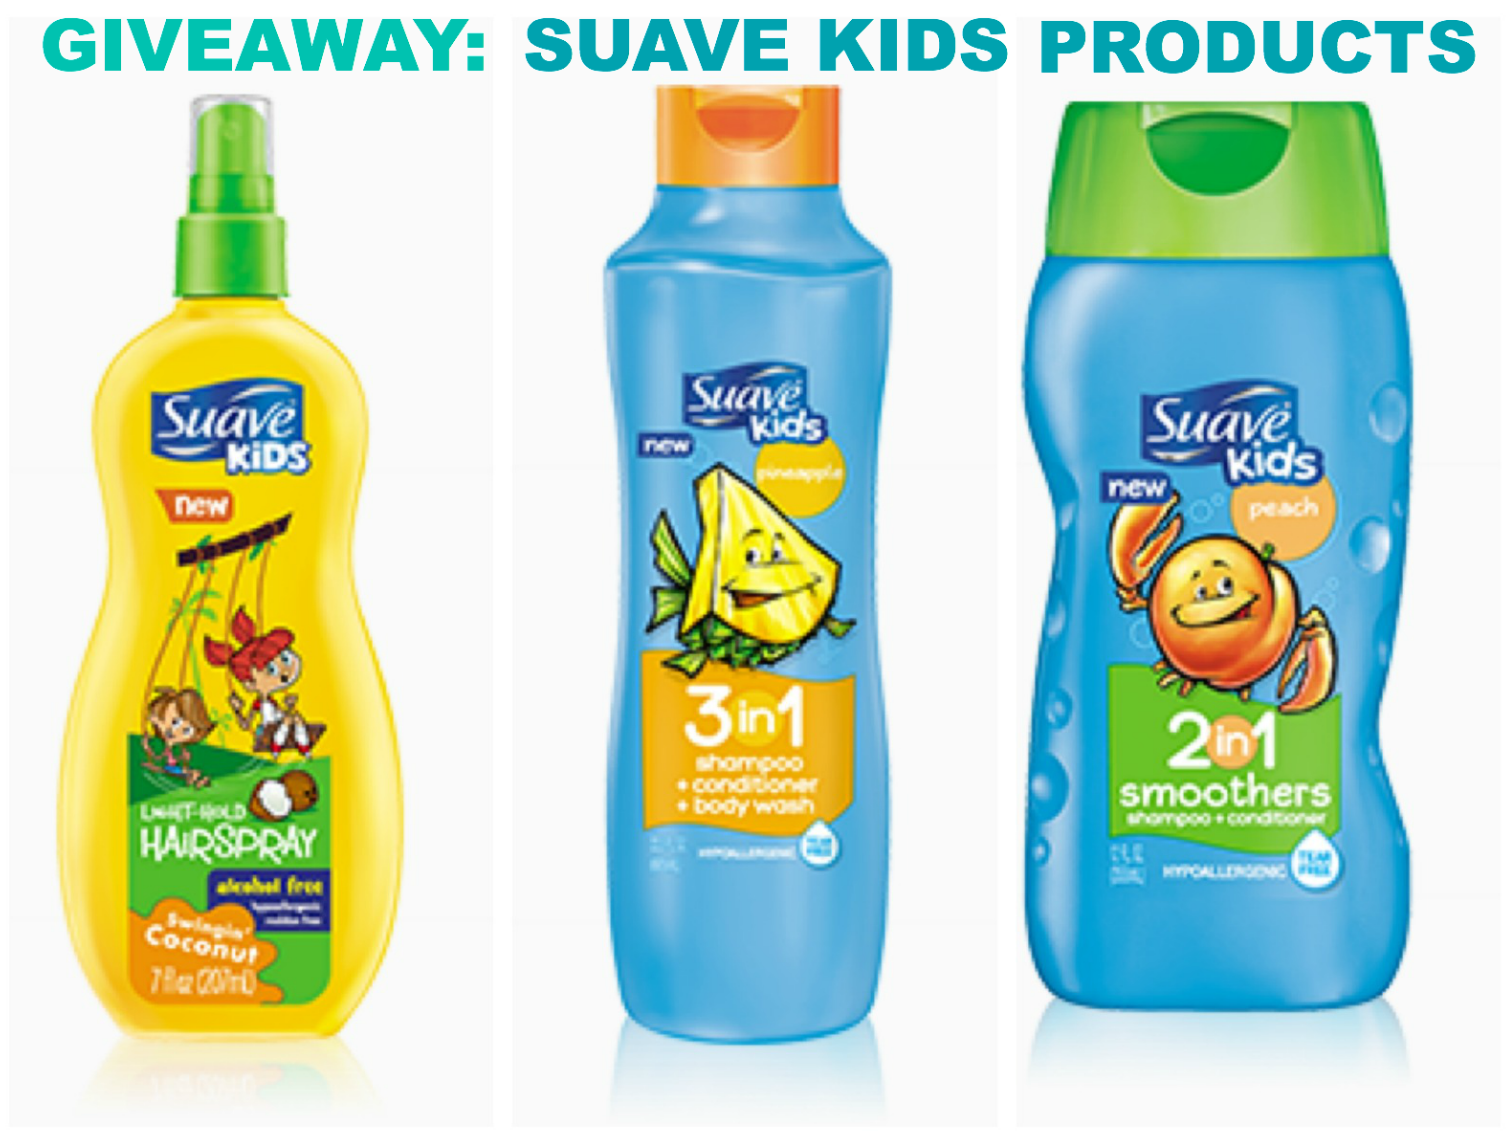 Giveaway New Suave Kids Products For Your Little One